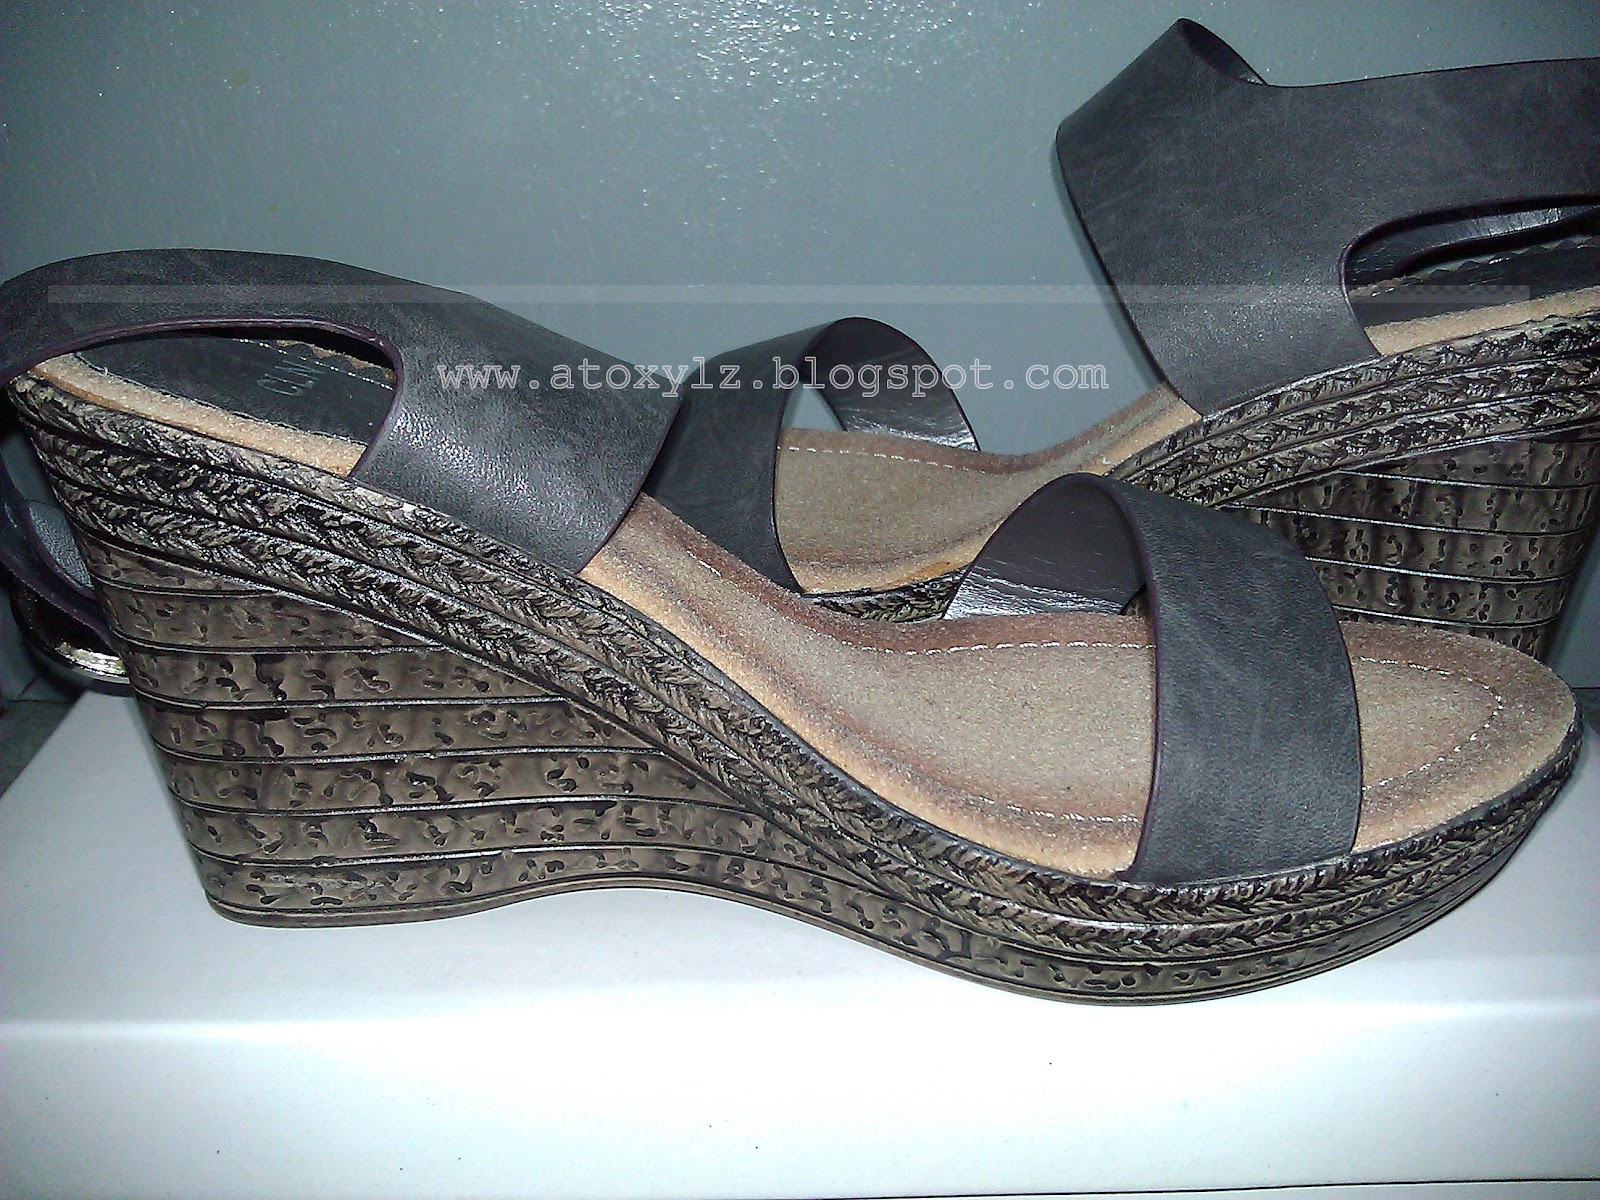 Cln shoes sandals philippines - This Is 12g Chaitra In Dark Gray From Their October 2012 Collection This Comes With A Tan And Pinkish Nude Colors